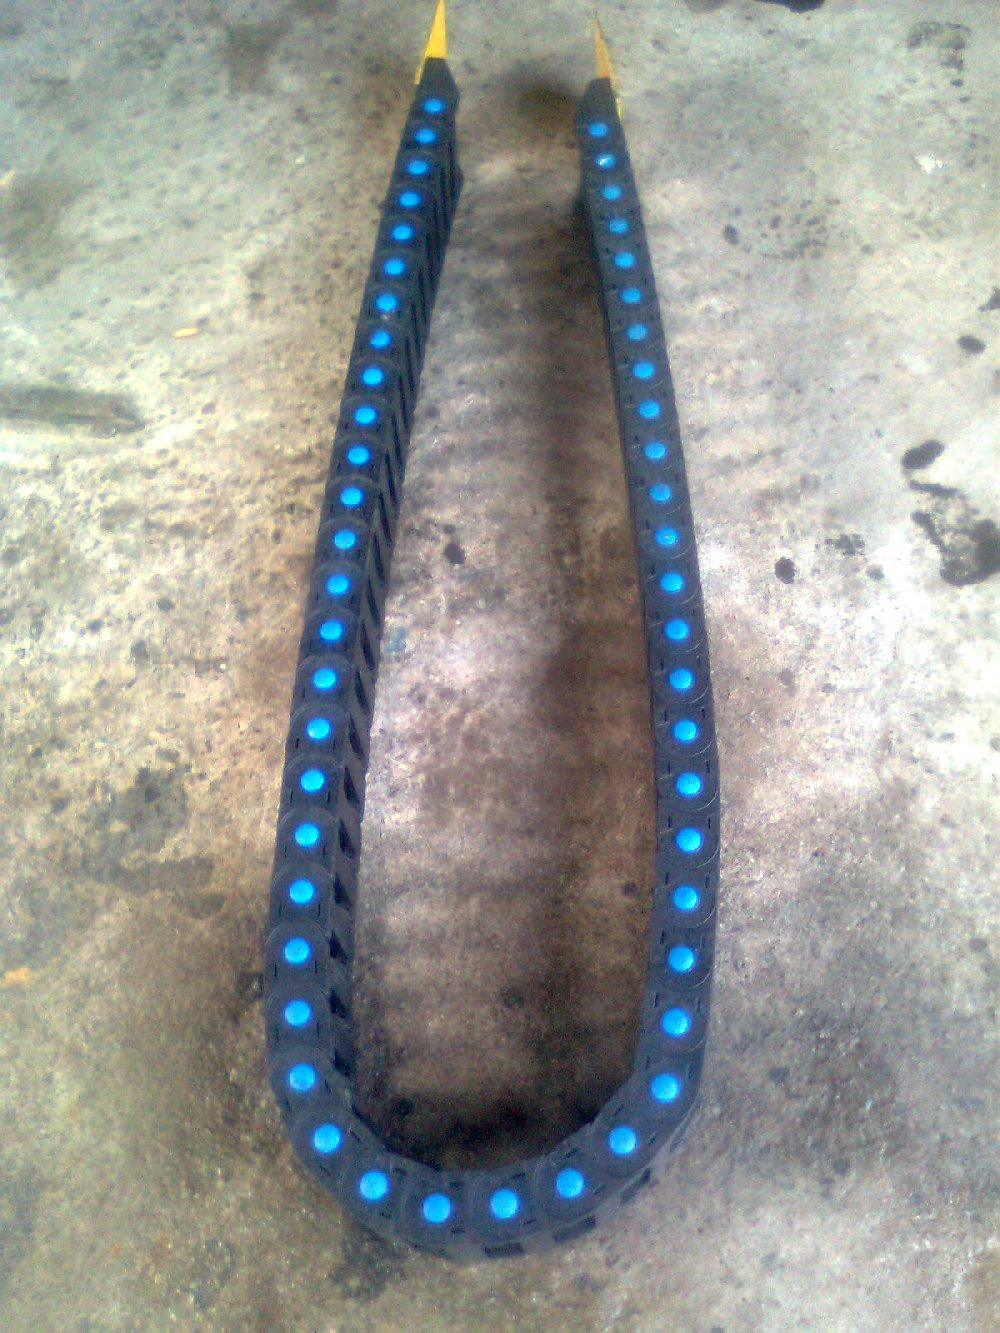 SKYLIFT CABLE CHAIN